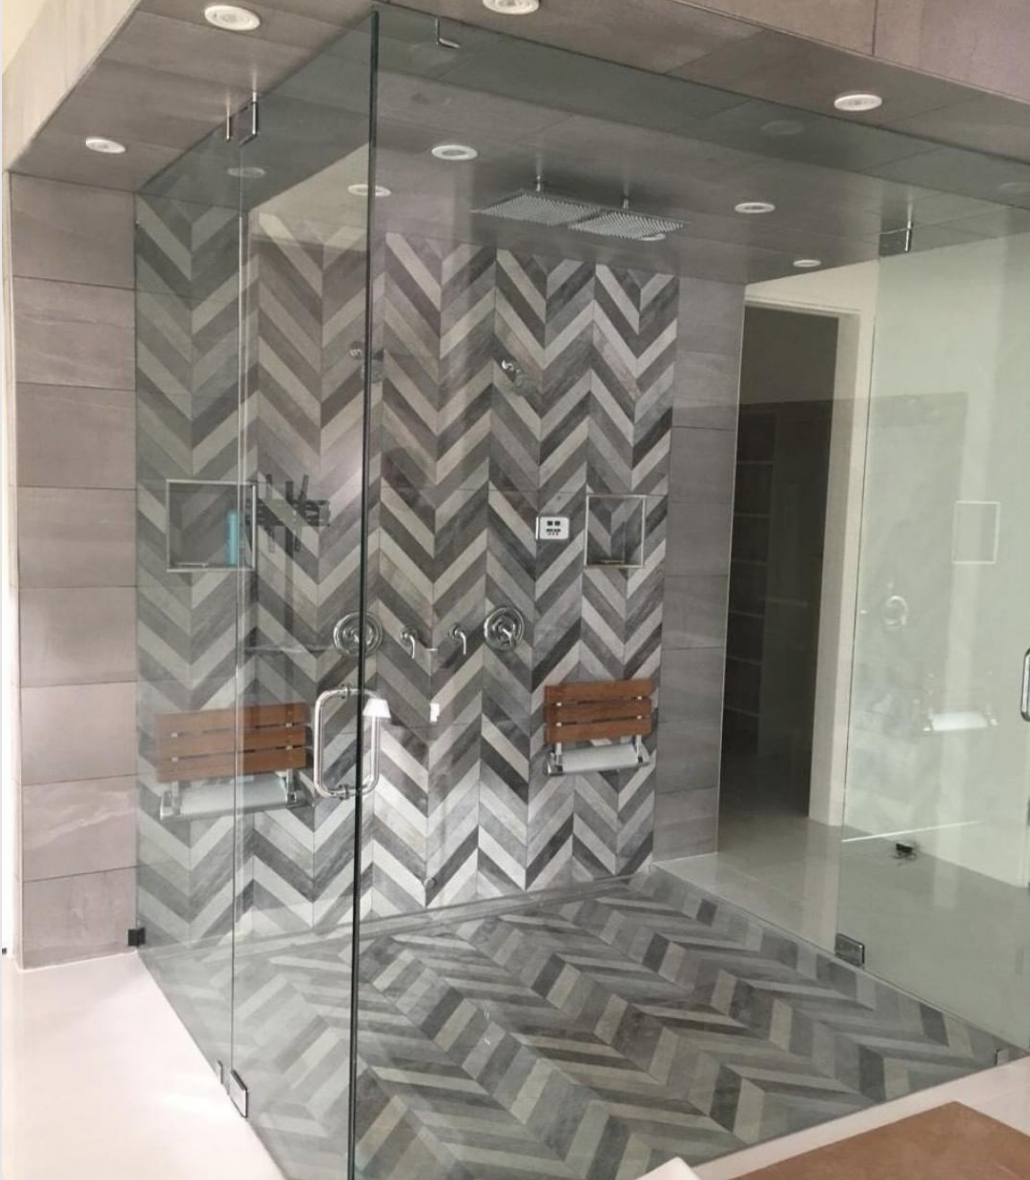 Top 8 Of 2018 Kitchen And Bath Designs On Instagram Kitchen And Bath Design Hospital Interior Design Shower Tile Designs